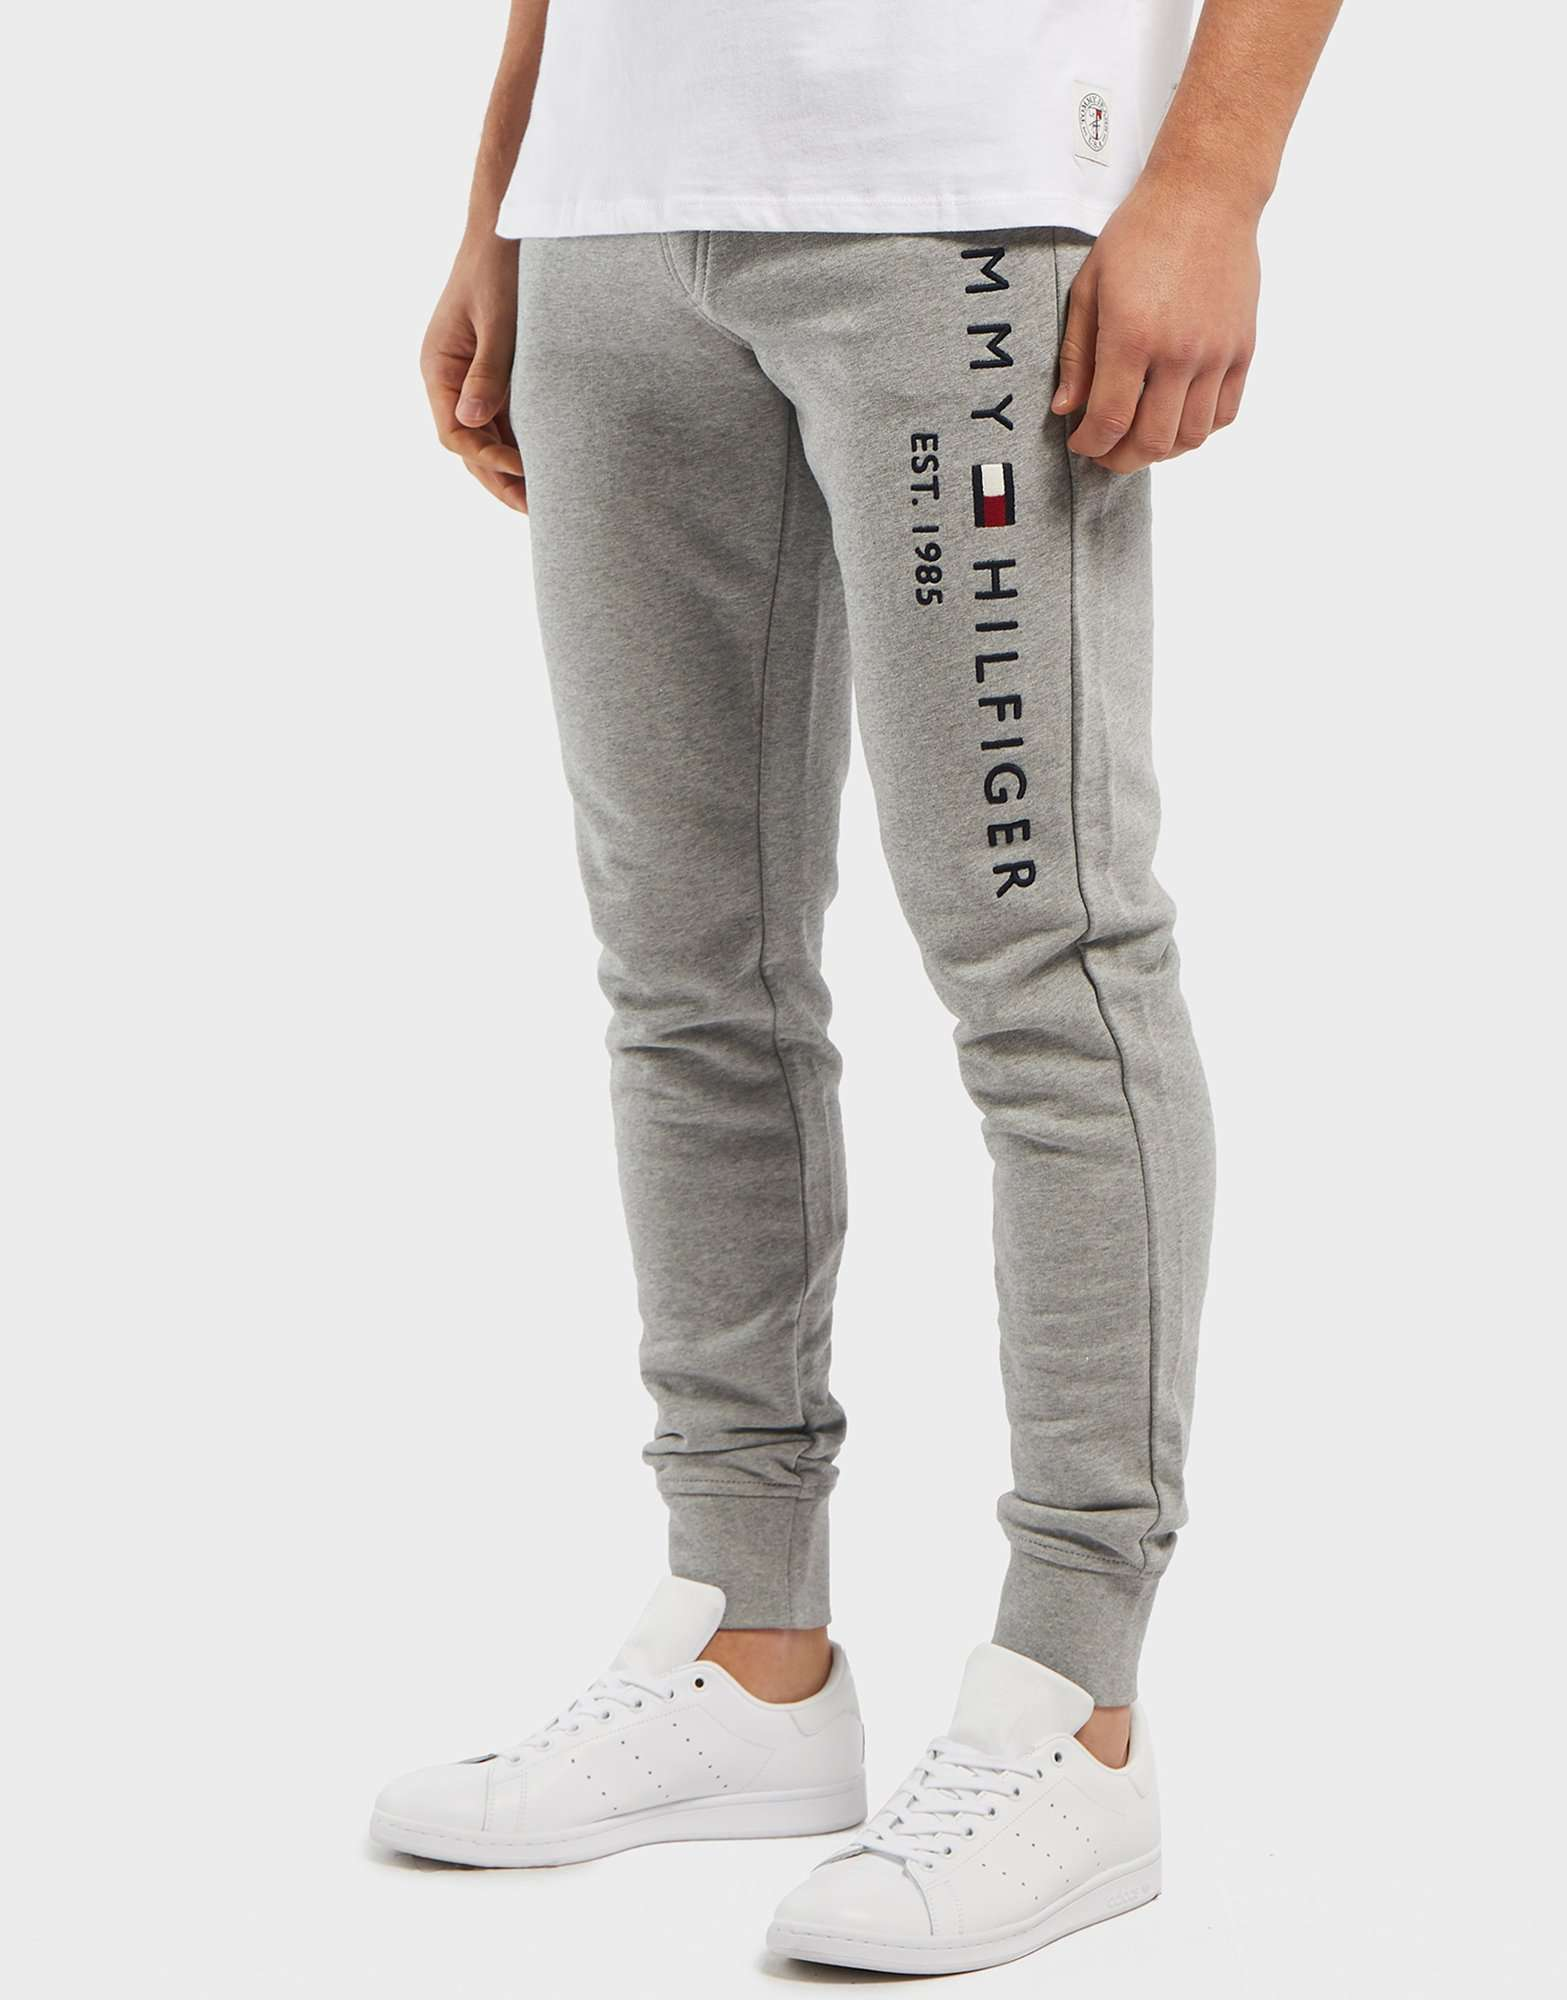 Tommy Hilfiger Logo Cuffed Fleece Pants